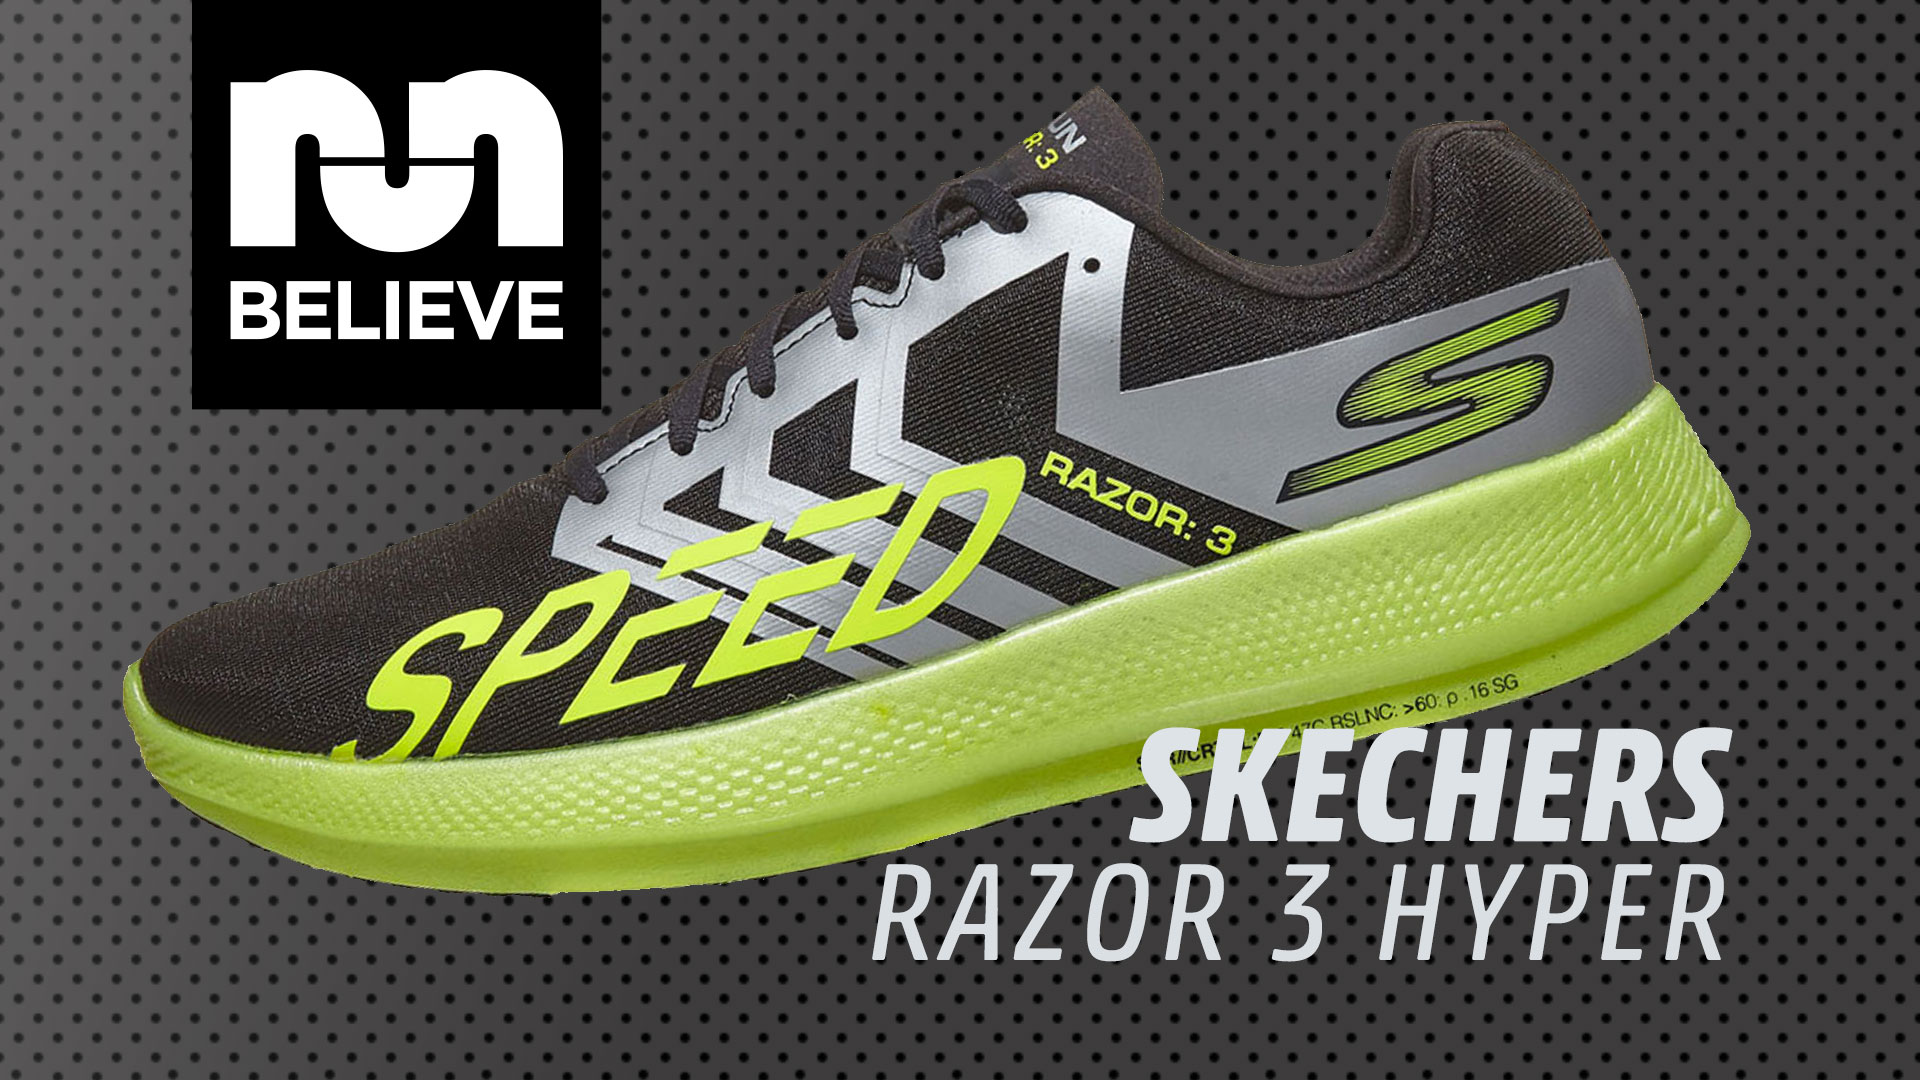 d7f625b9 Skechers GOrun Razor 3 Hyper Video Performance Review » Believe in ...